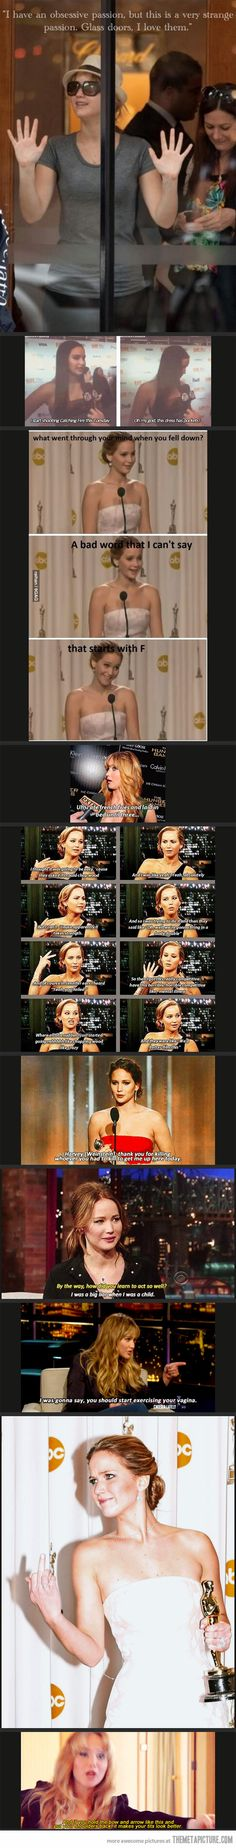 I adore her! Jennifer Lawrence